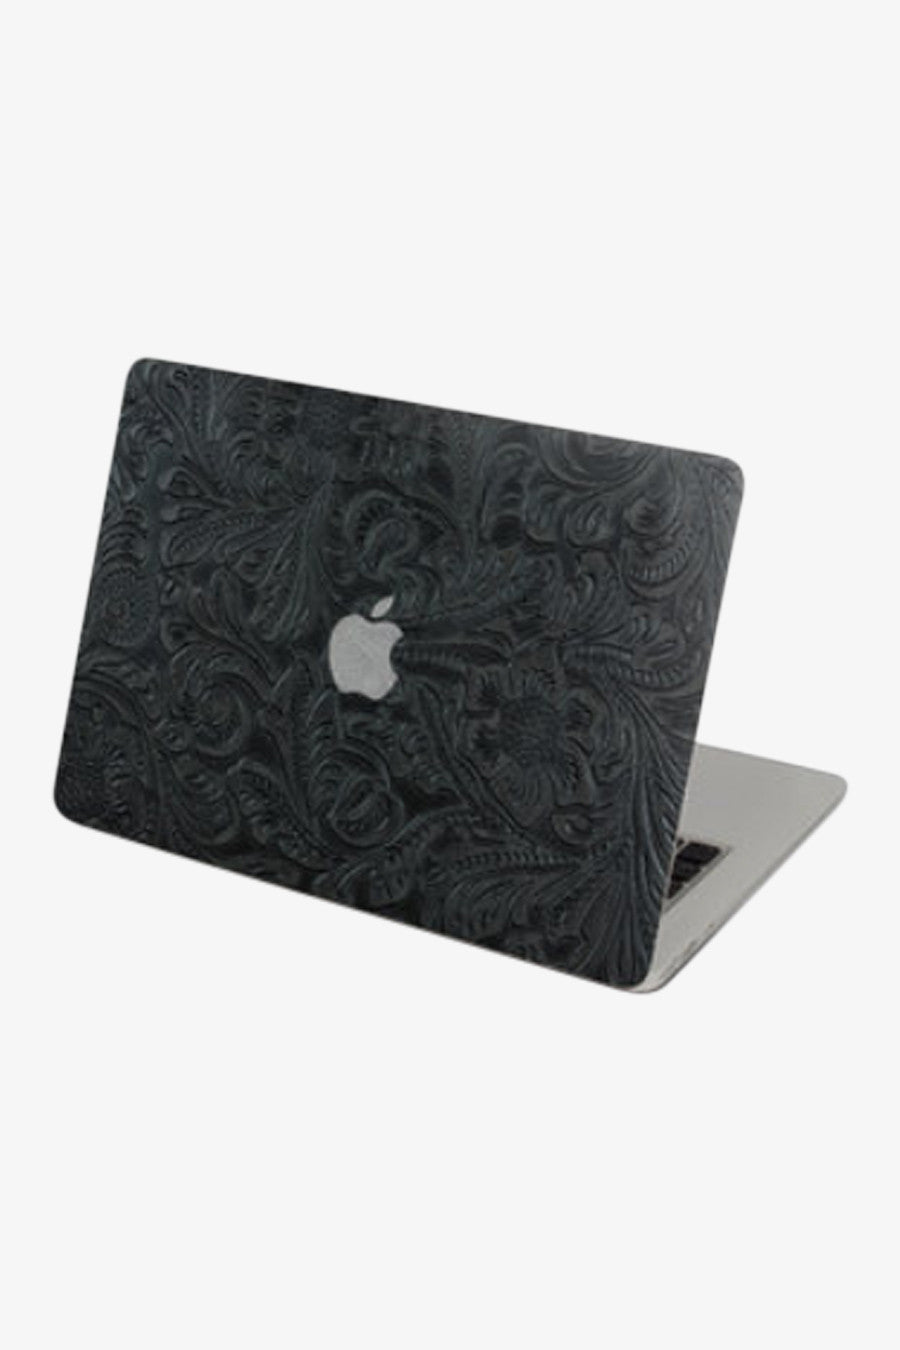 Macbook Dark Grain Leather Skin Decal Sticker. Art Decals By Moooh!!